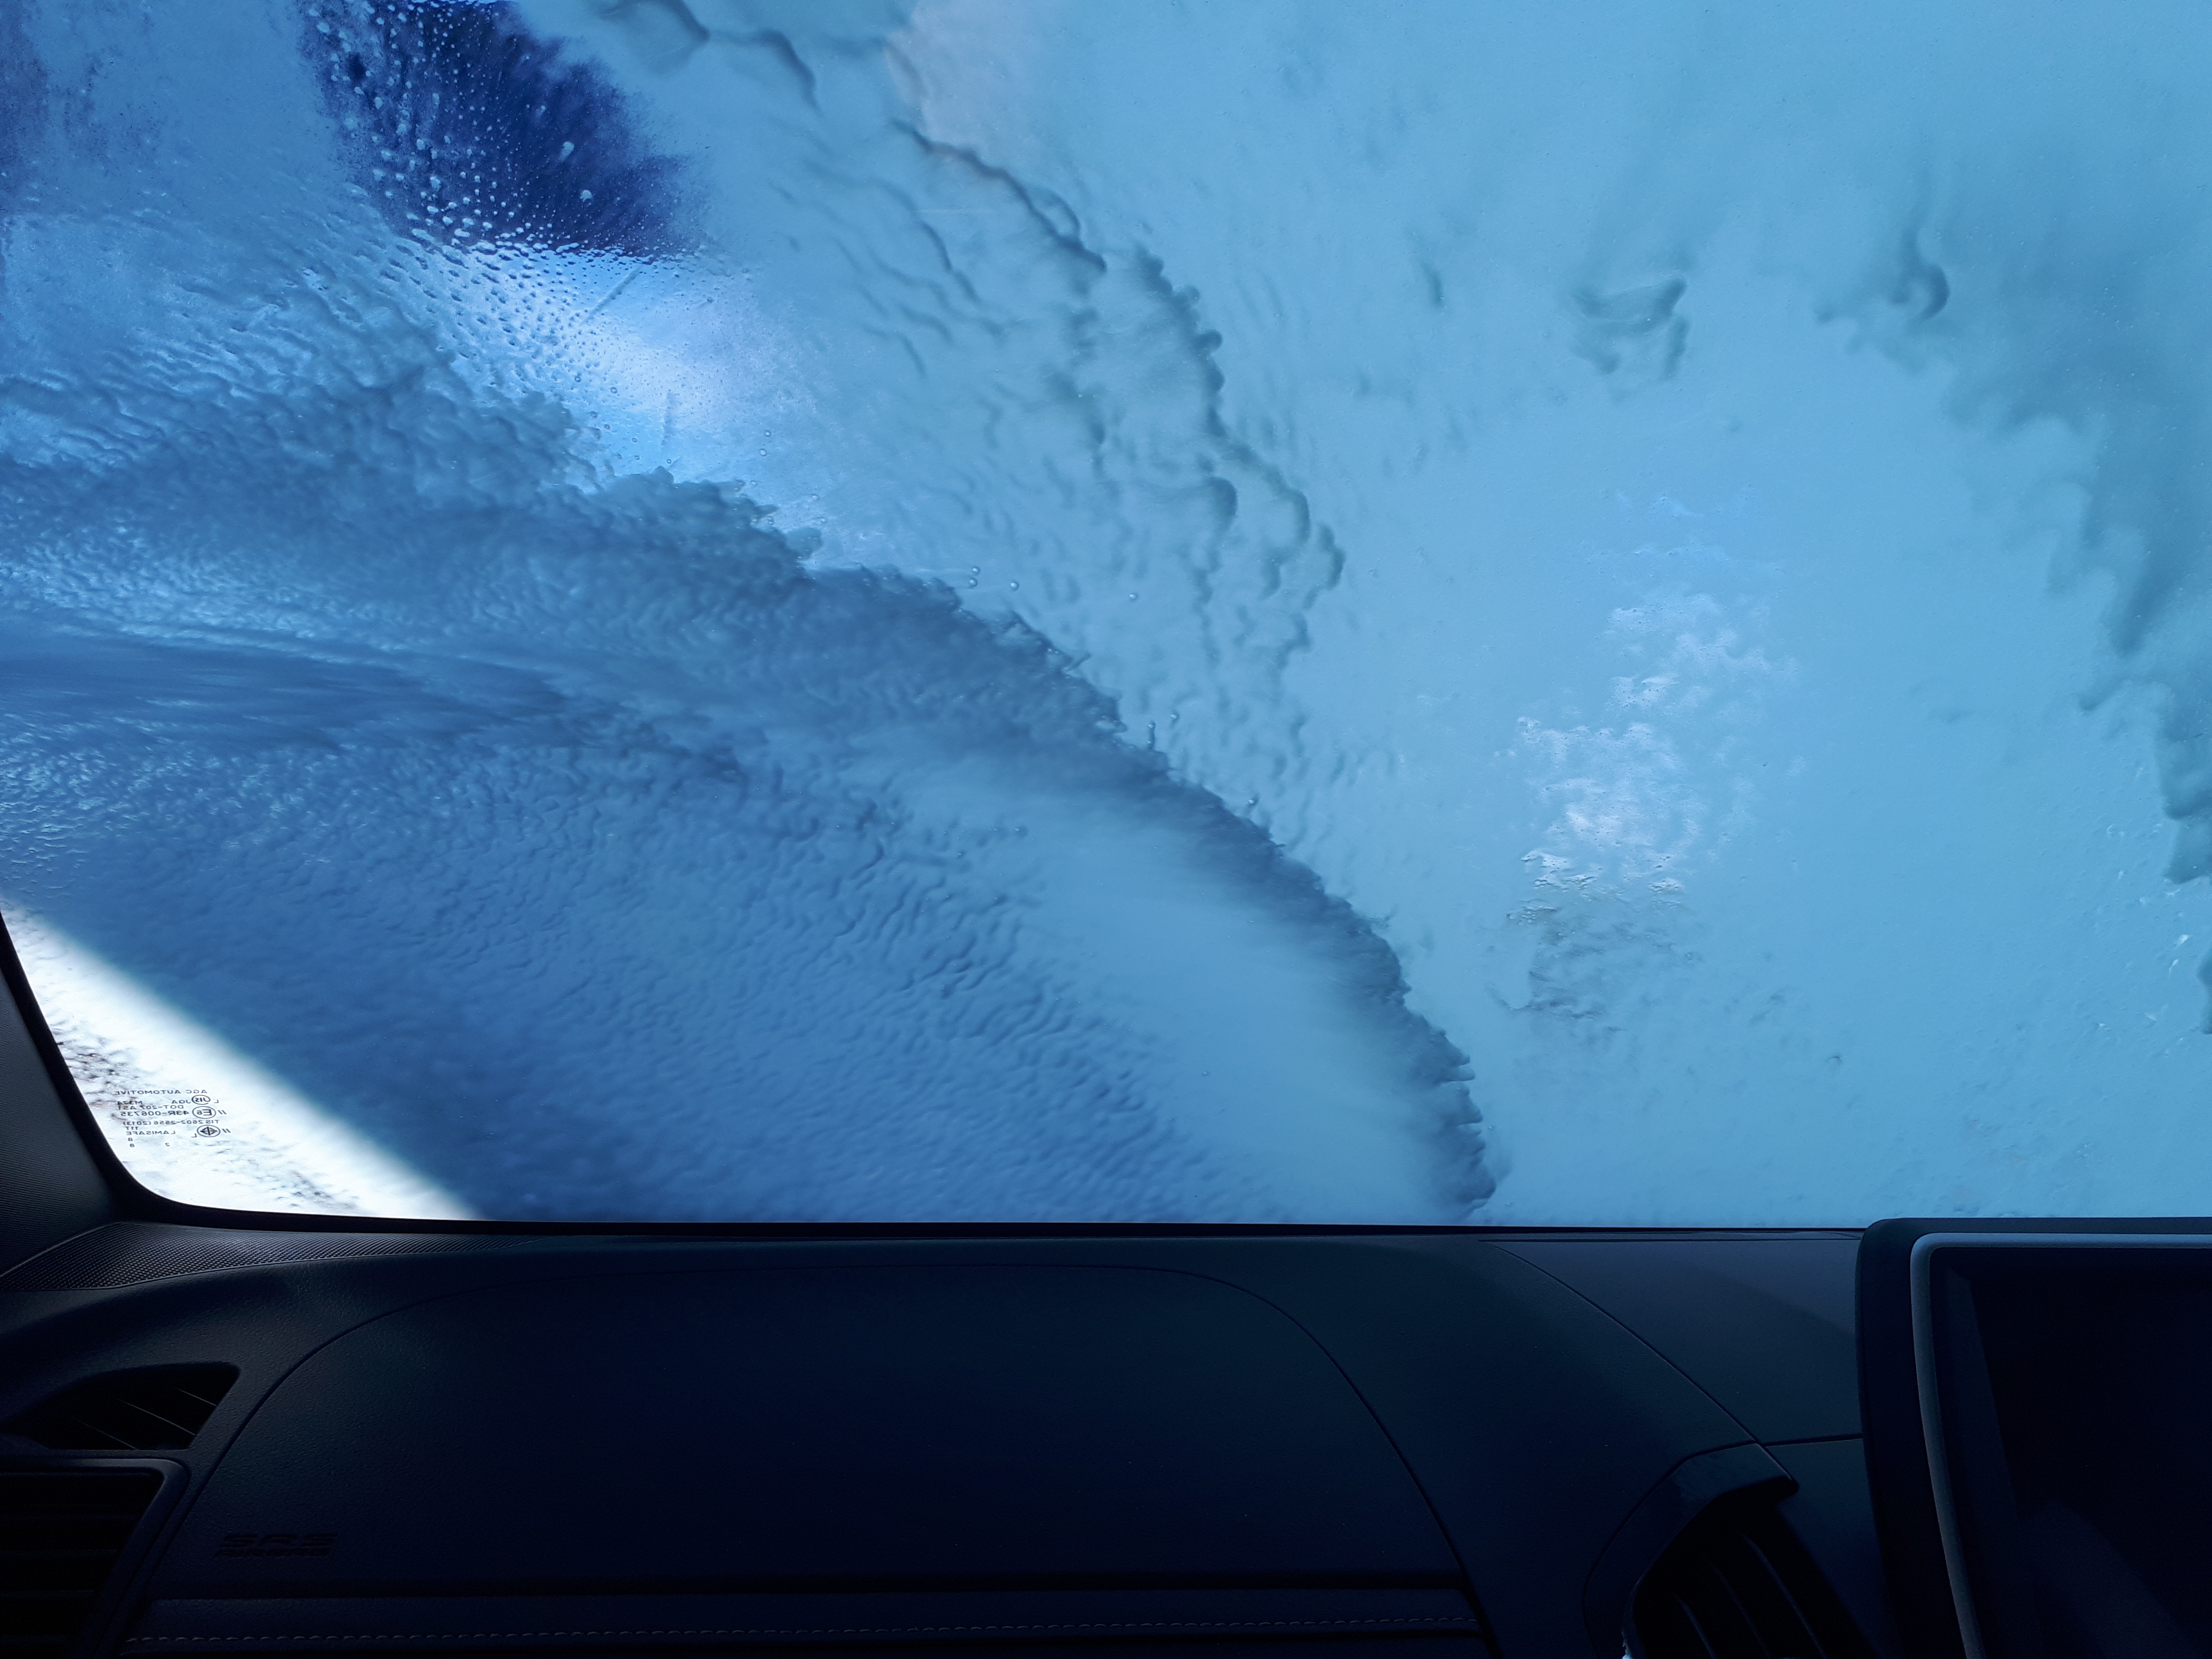 Truck windscreen covered with soap inside carwash